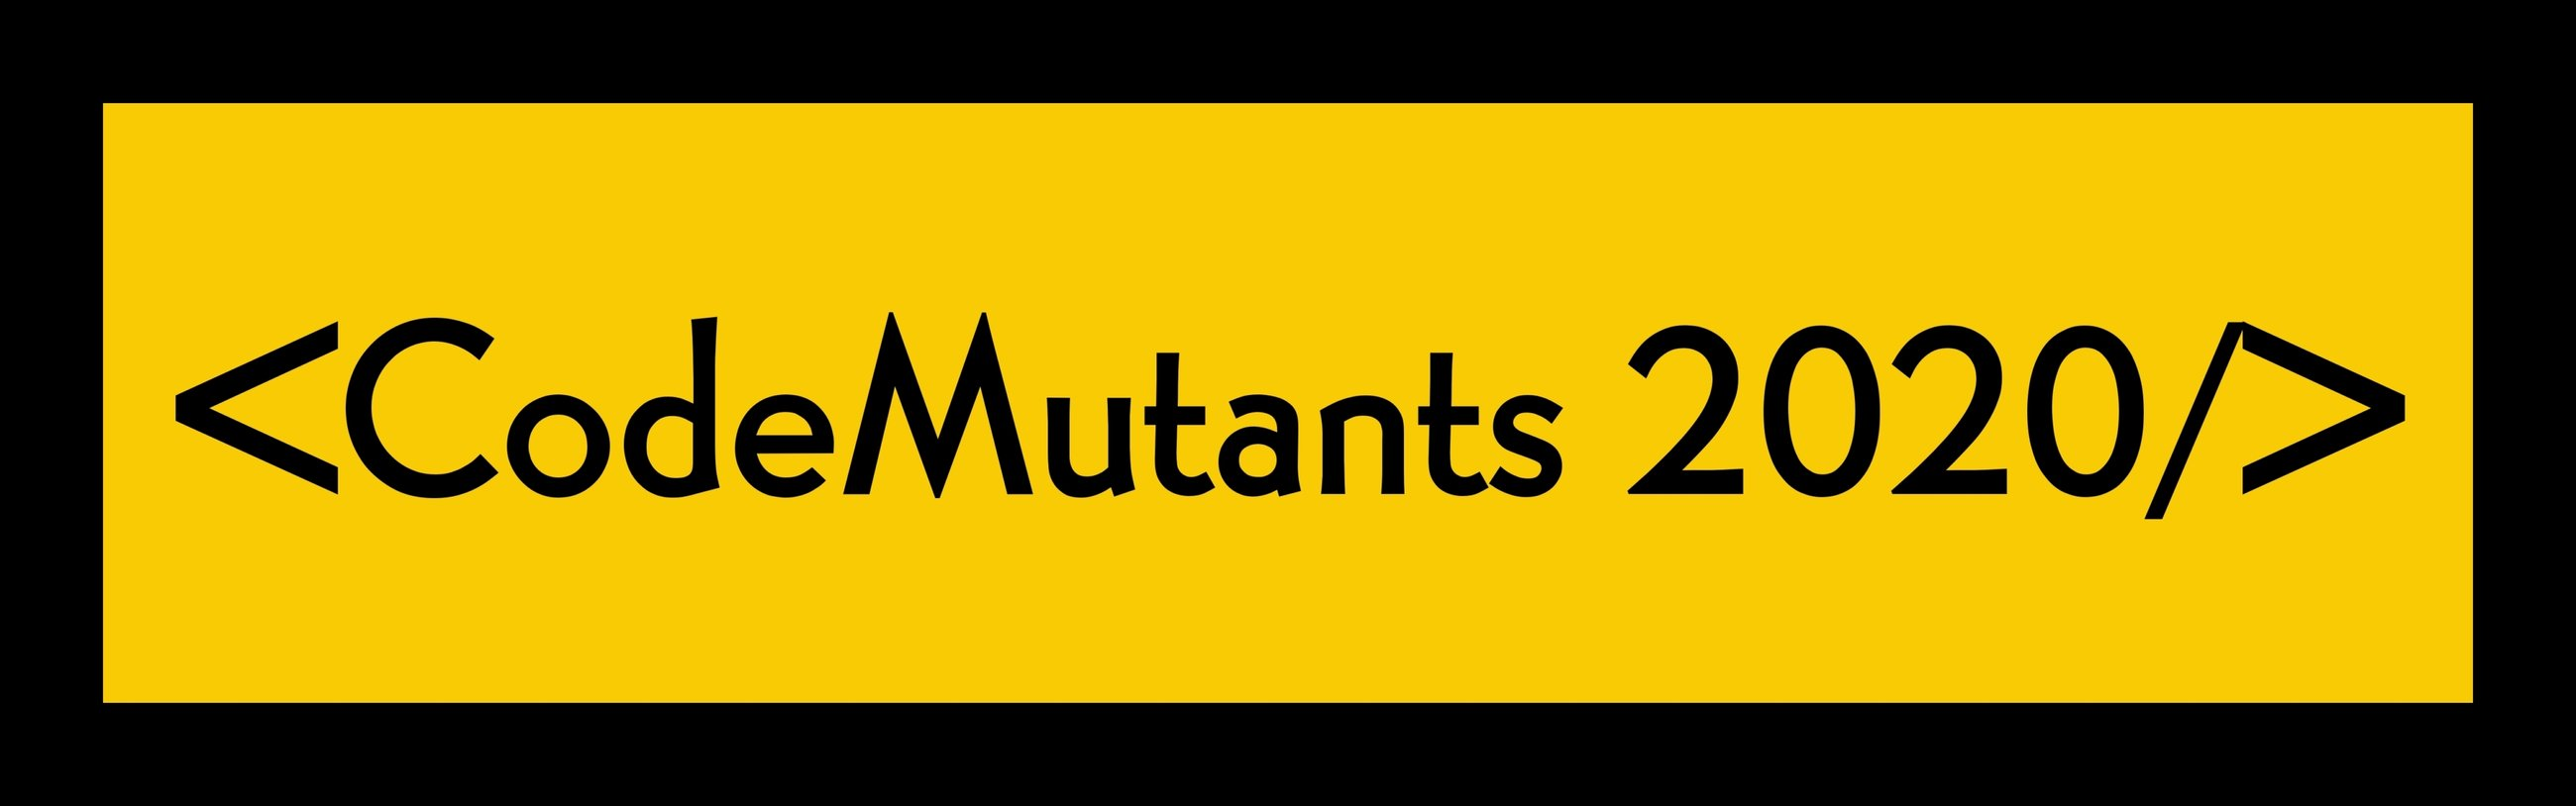 Codemutants 2020 Banner Contest